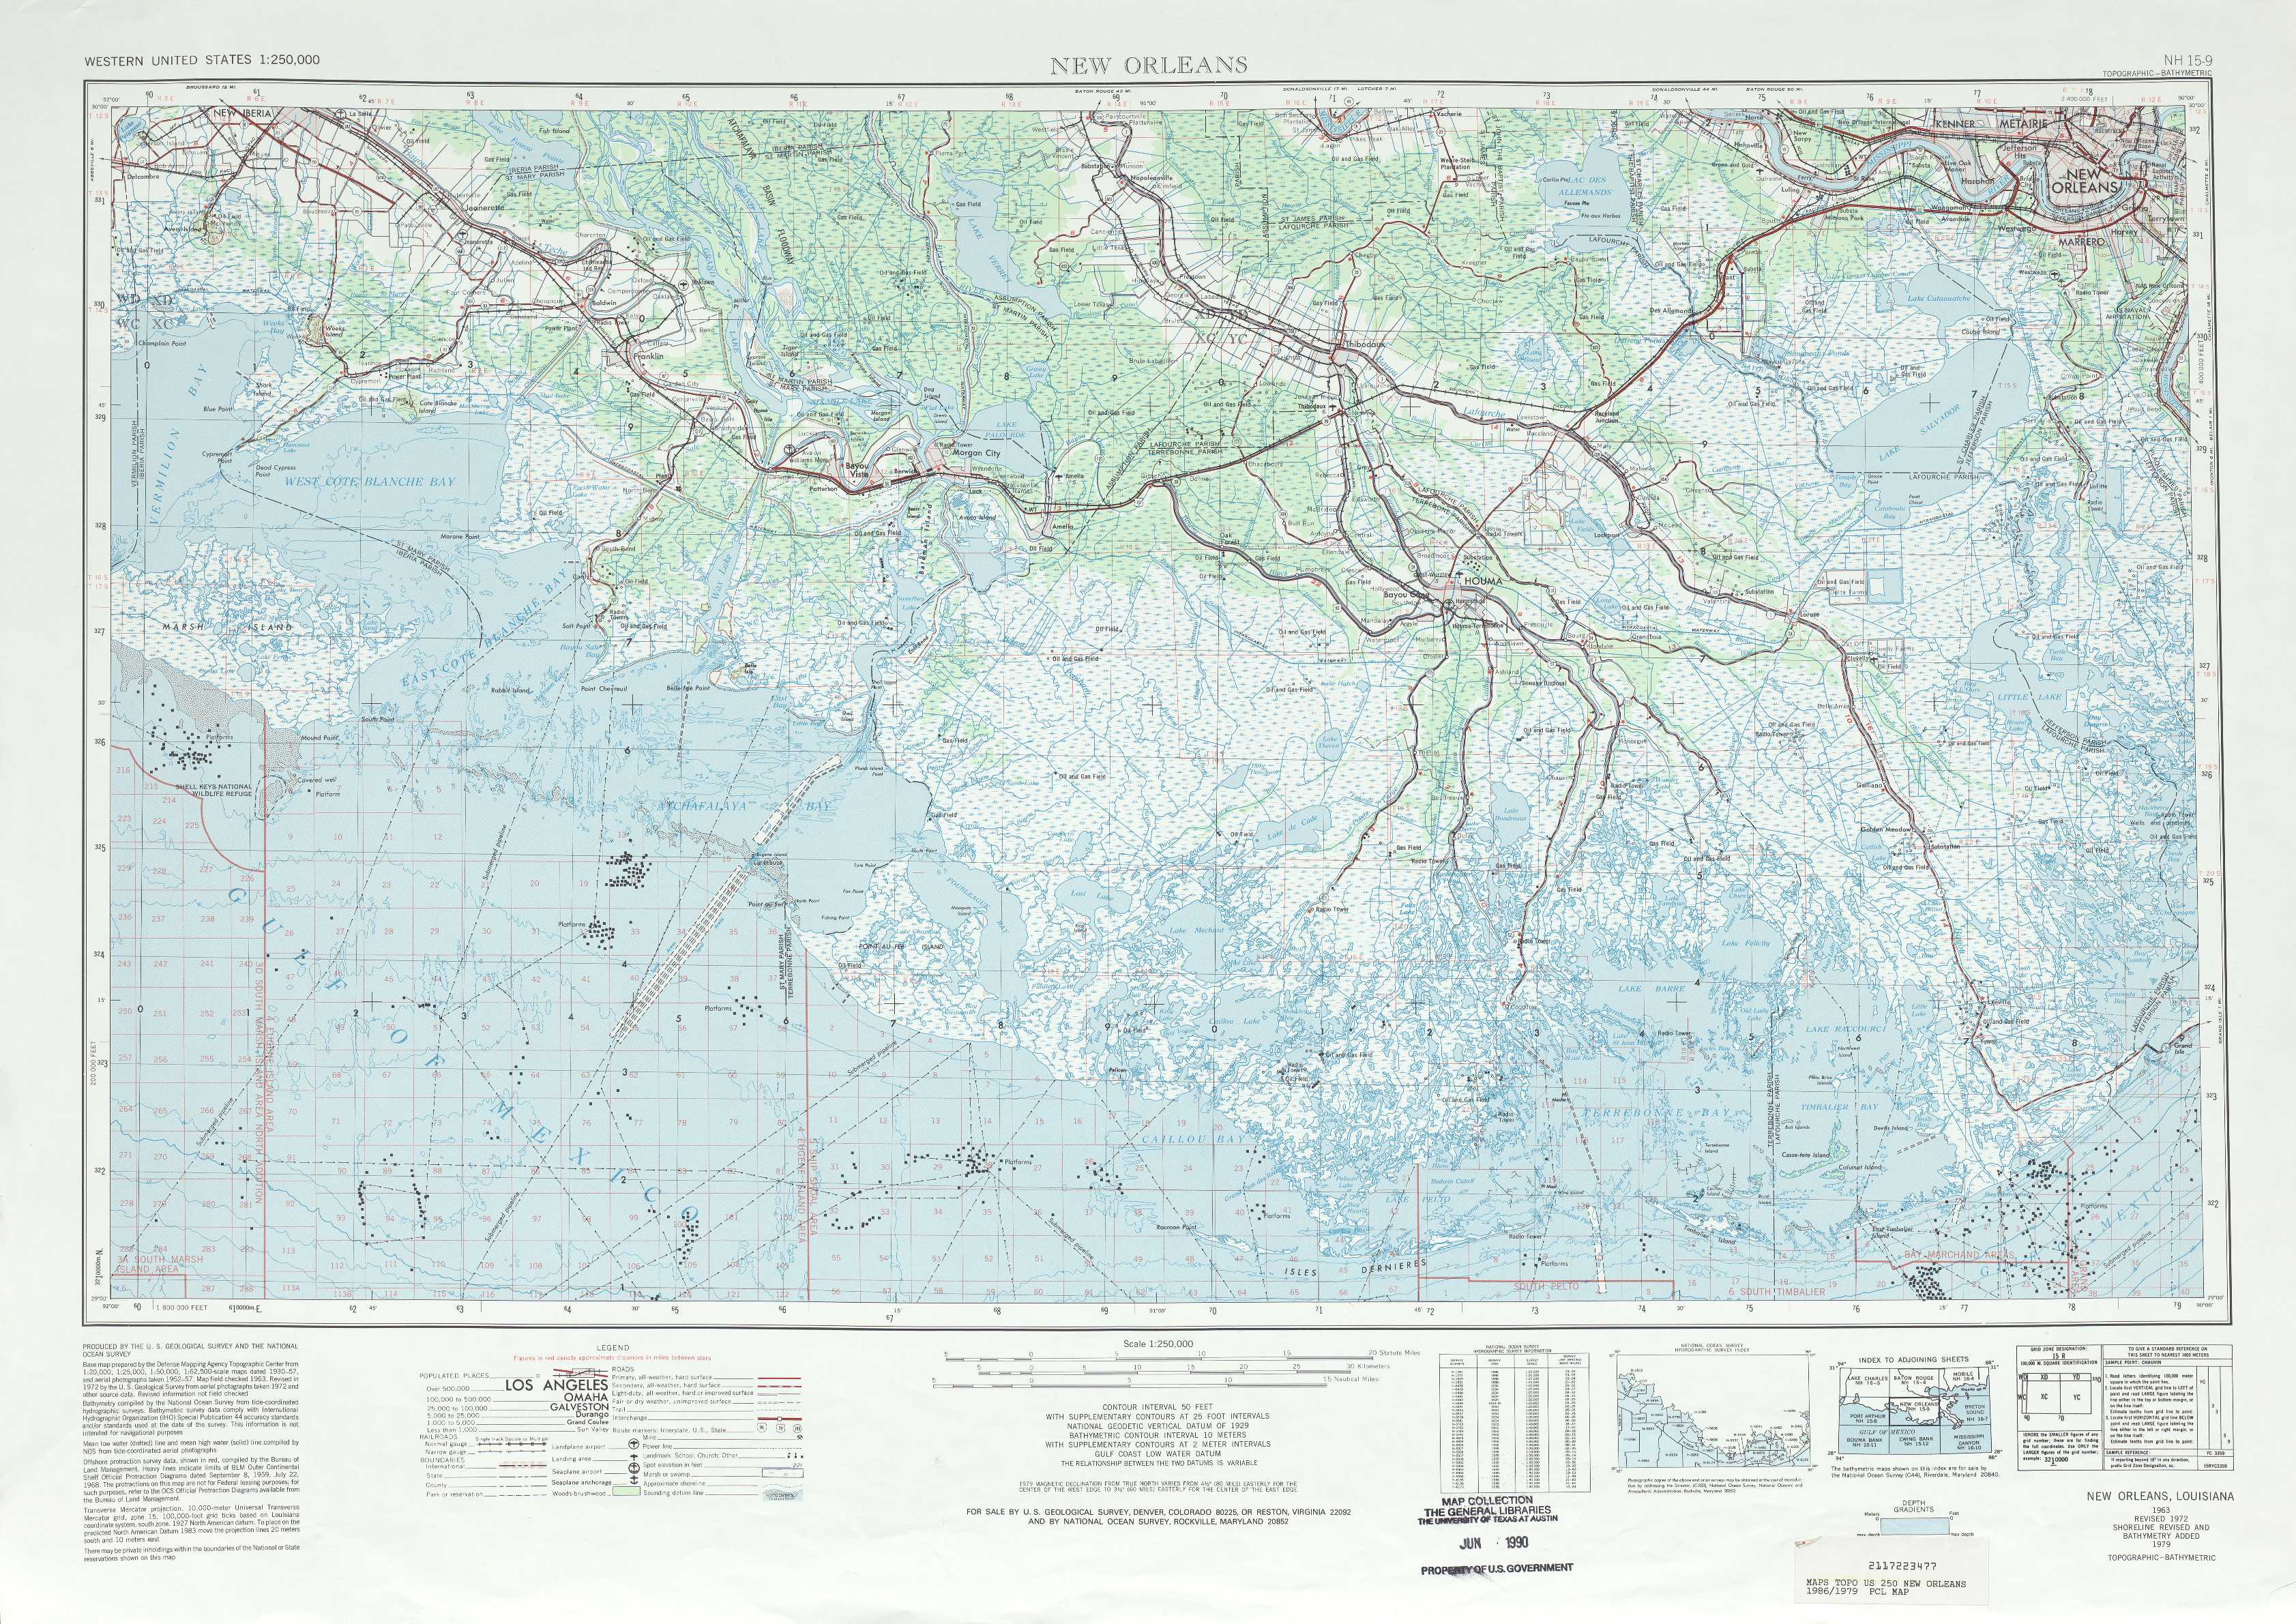 New Orleans topographic maps, LA   USGS Topo Quad 29090a1 at 1